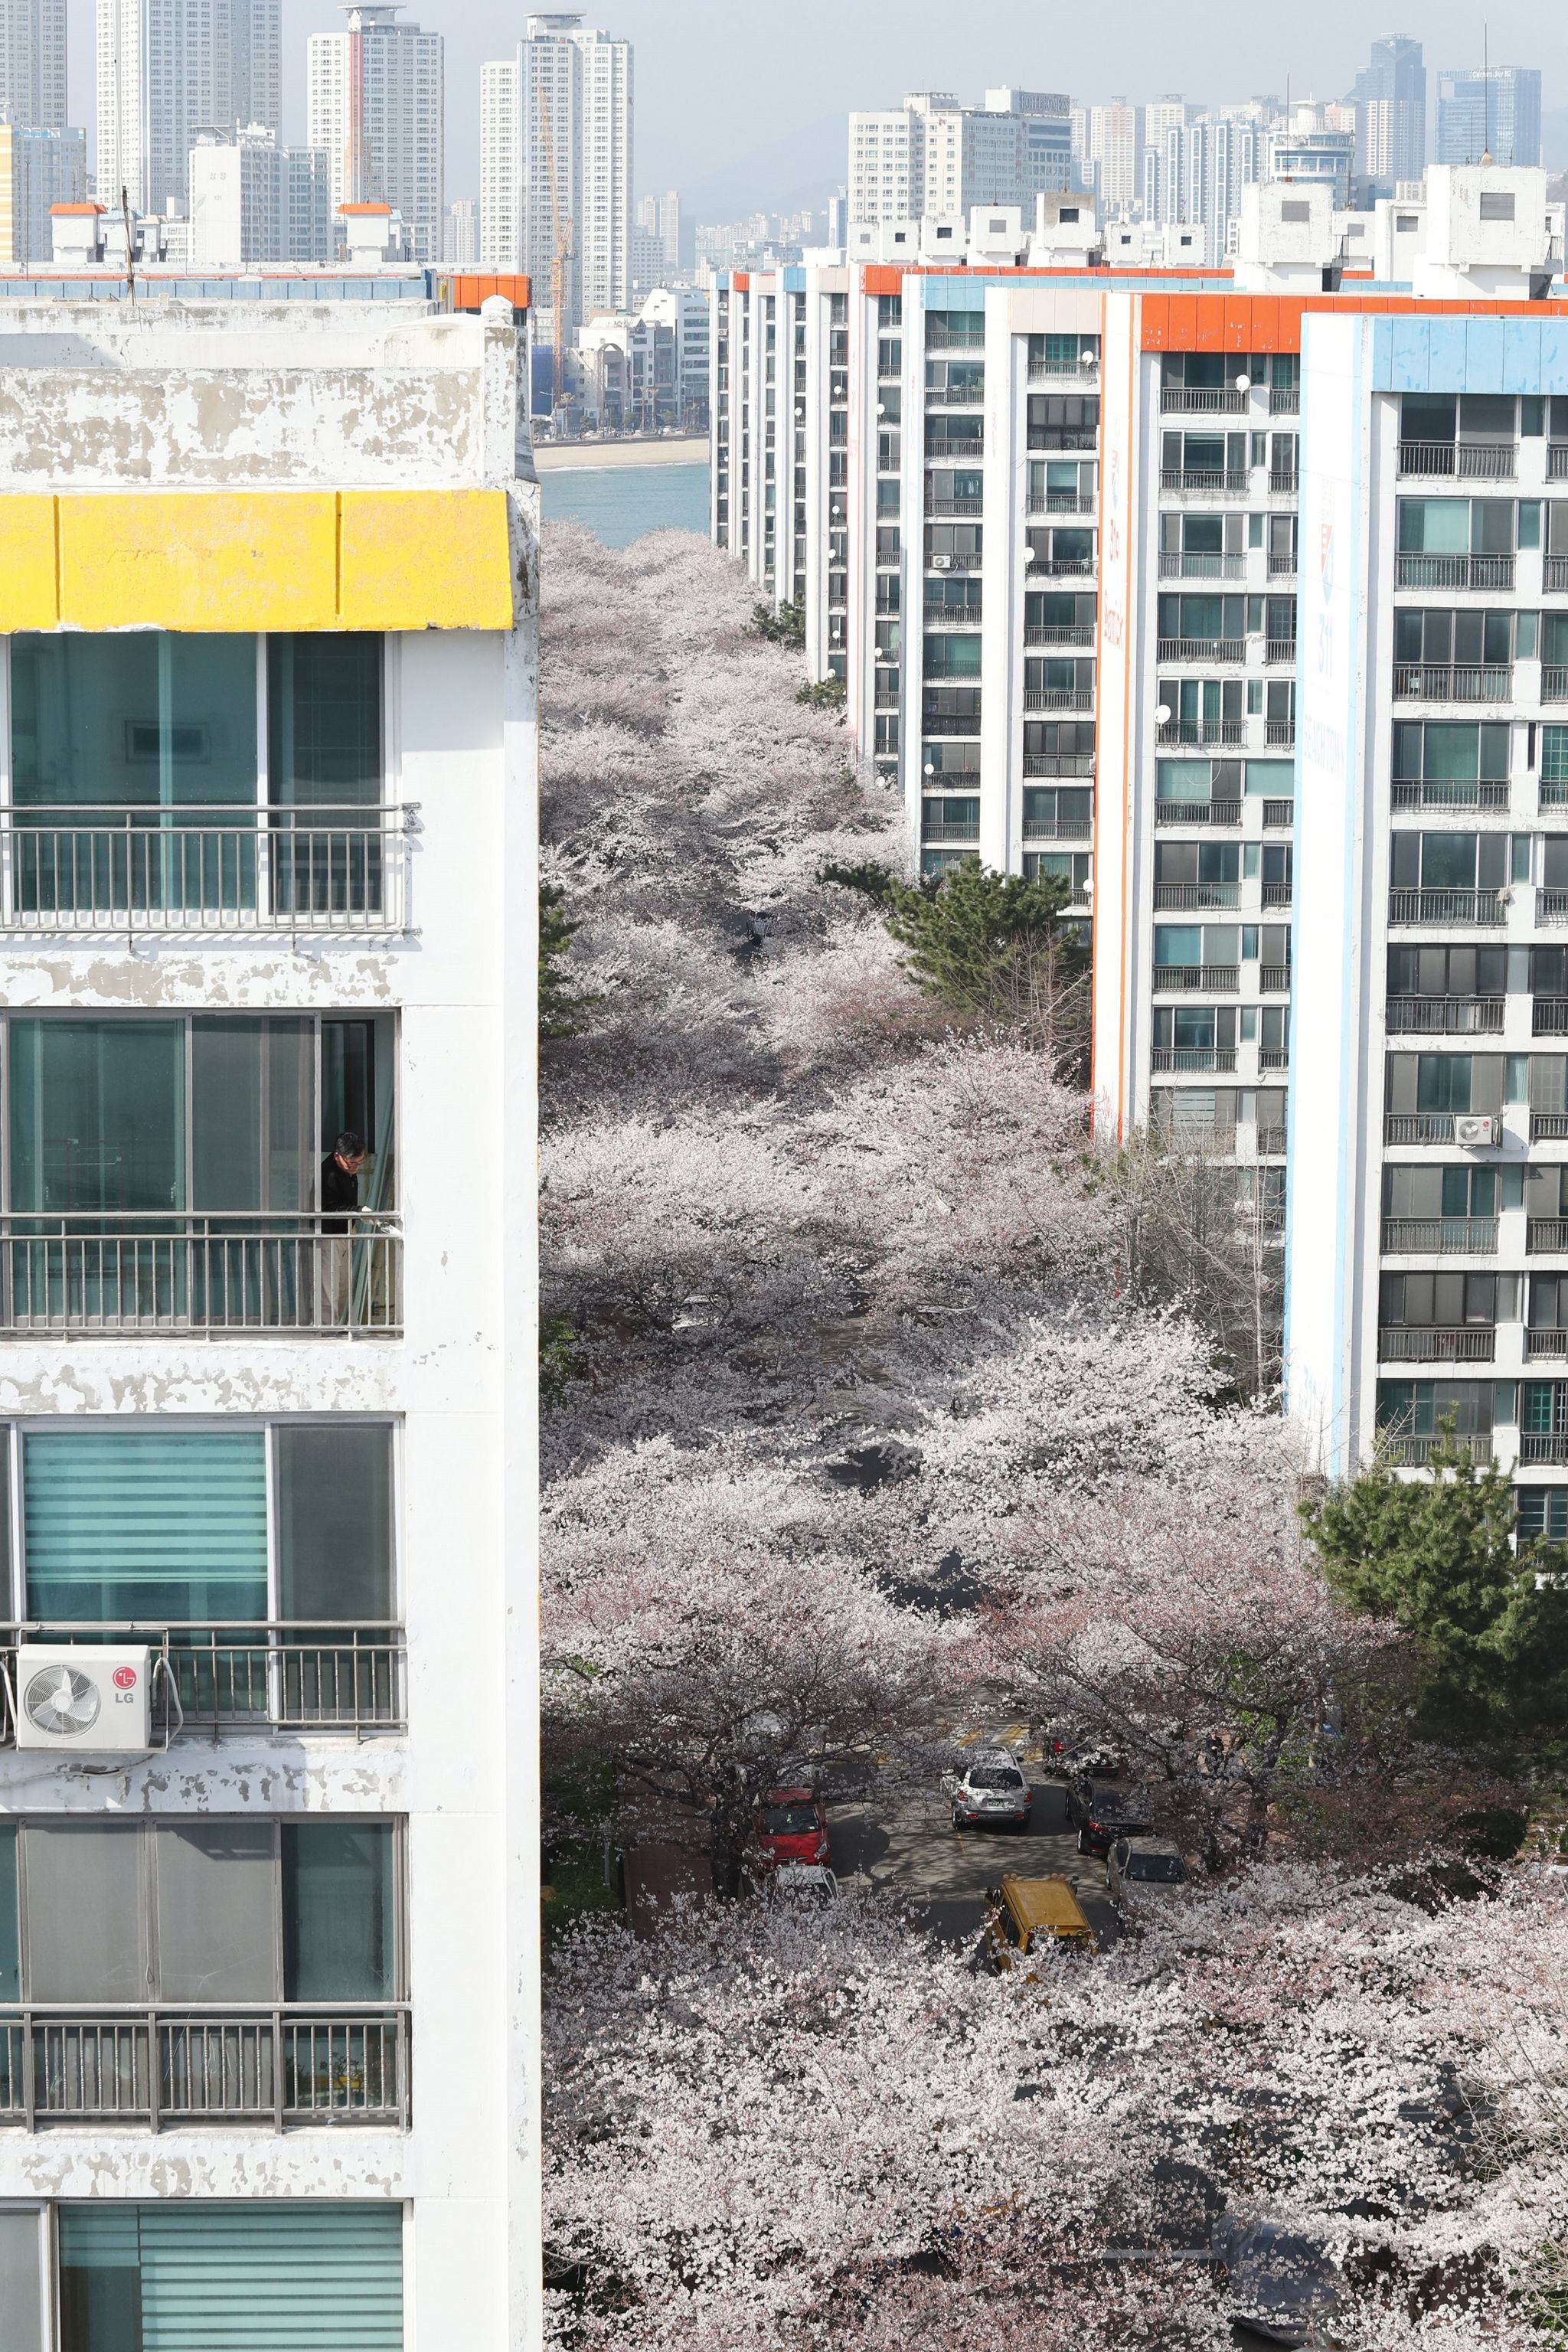 Cherry blossom trees in Busan, South Korea, 28 March 2018